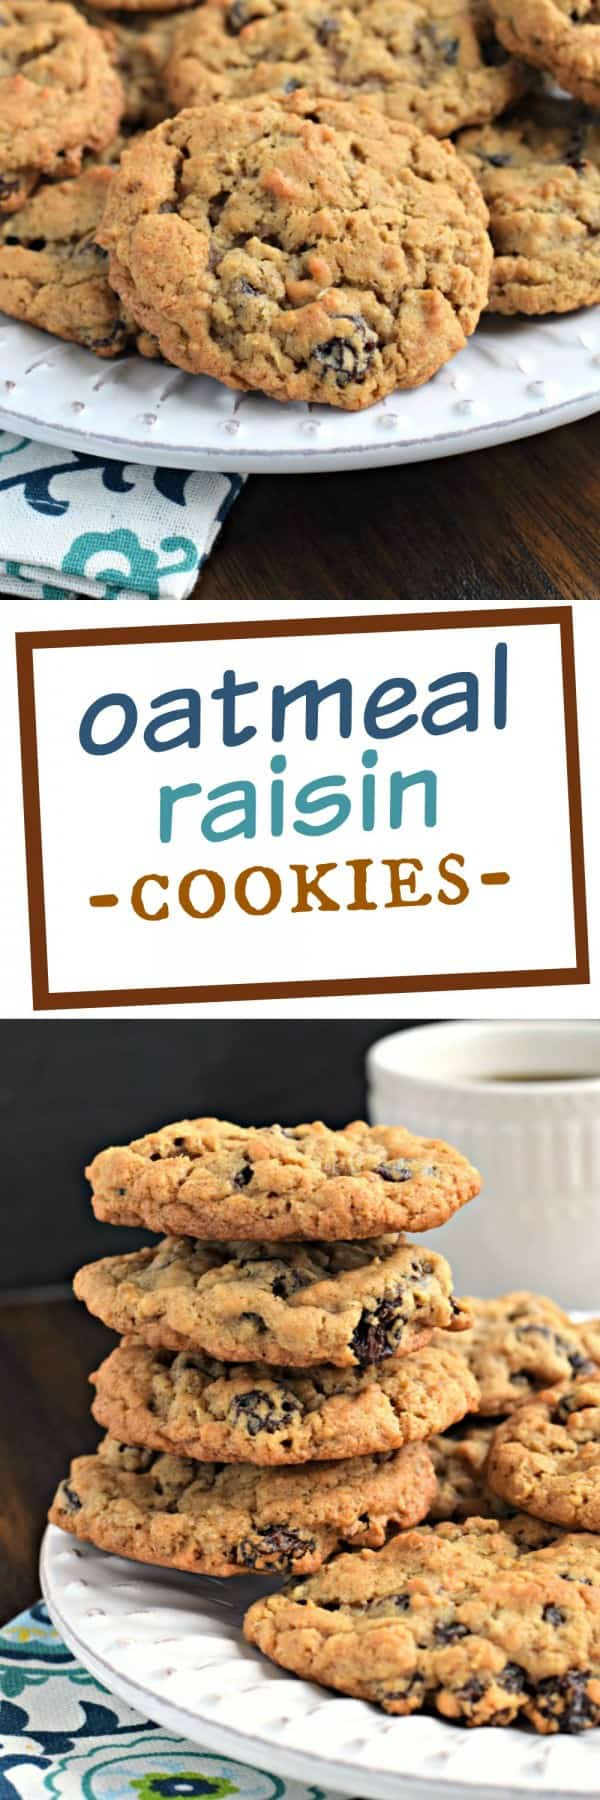 Recipe For Oatmeal Raisin Cookies  Oatmeal Raisin Cookies Recipe — Dishmaps